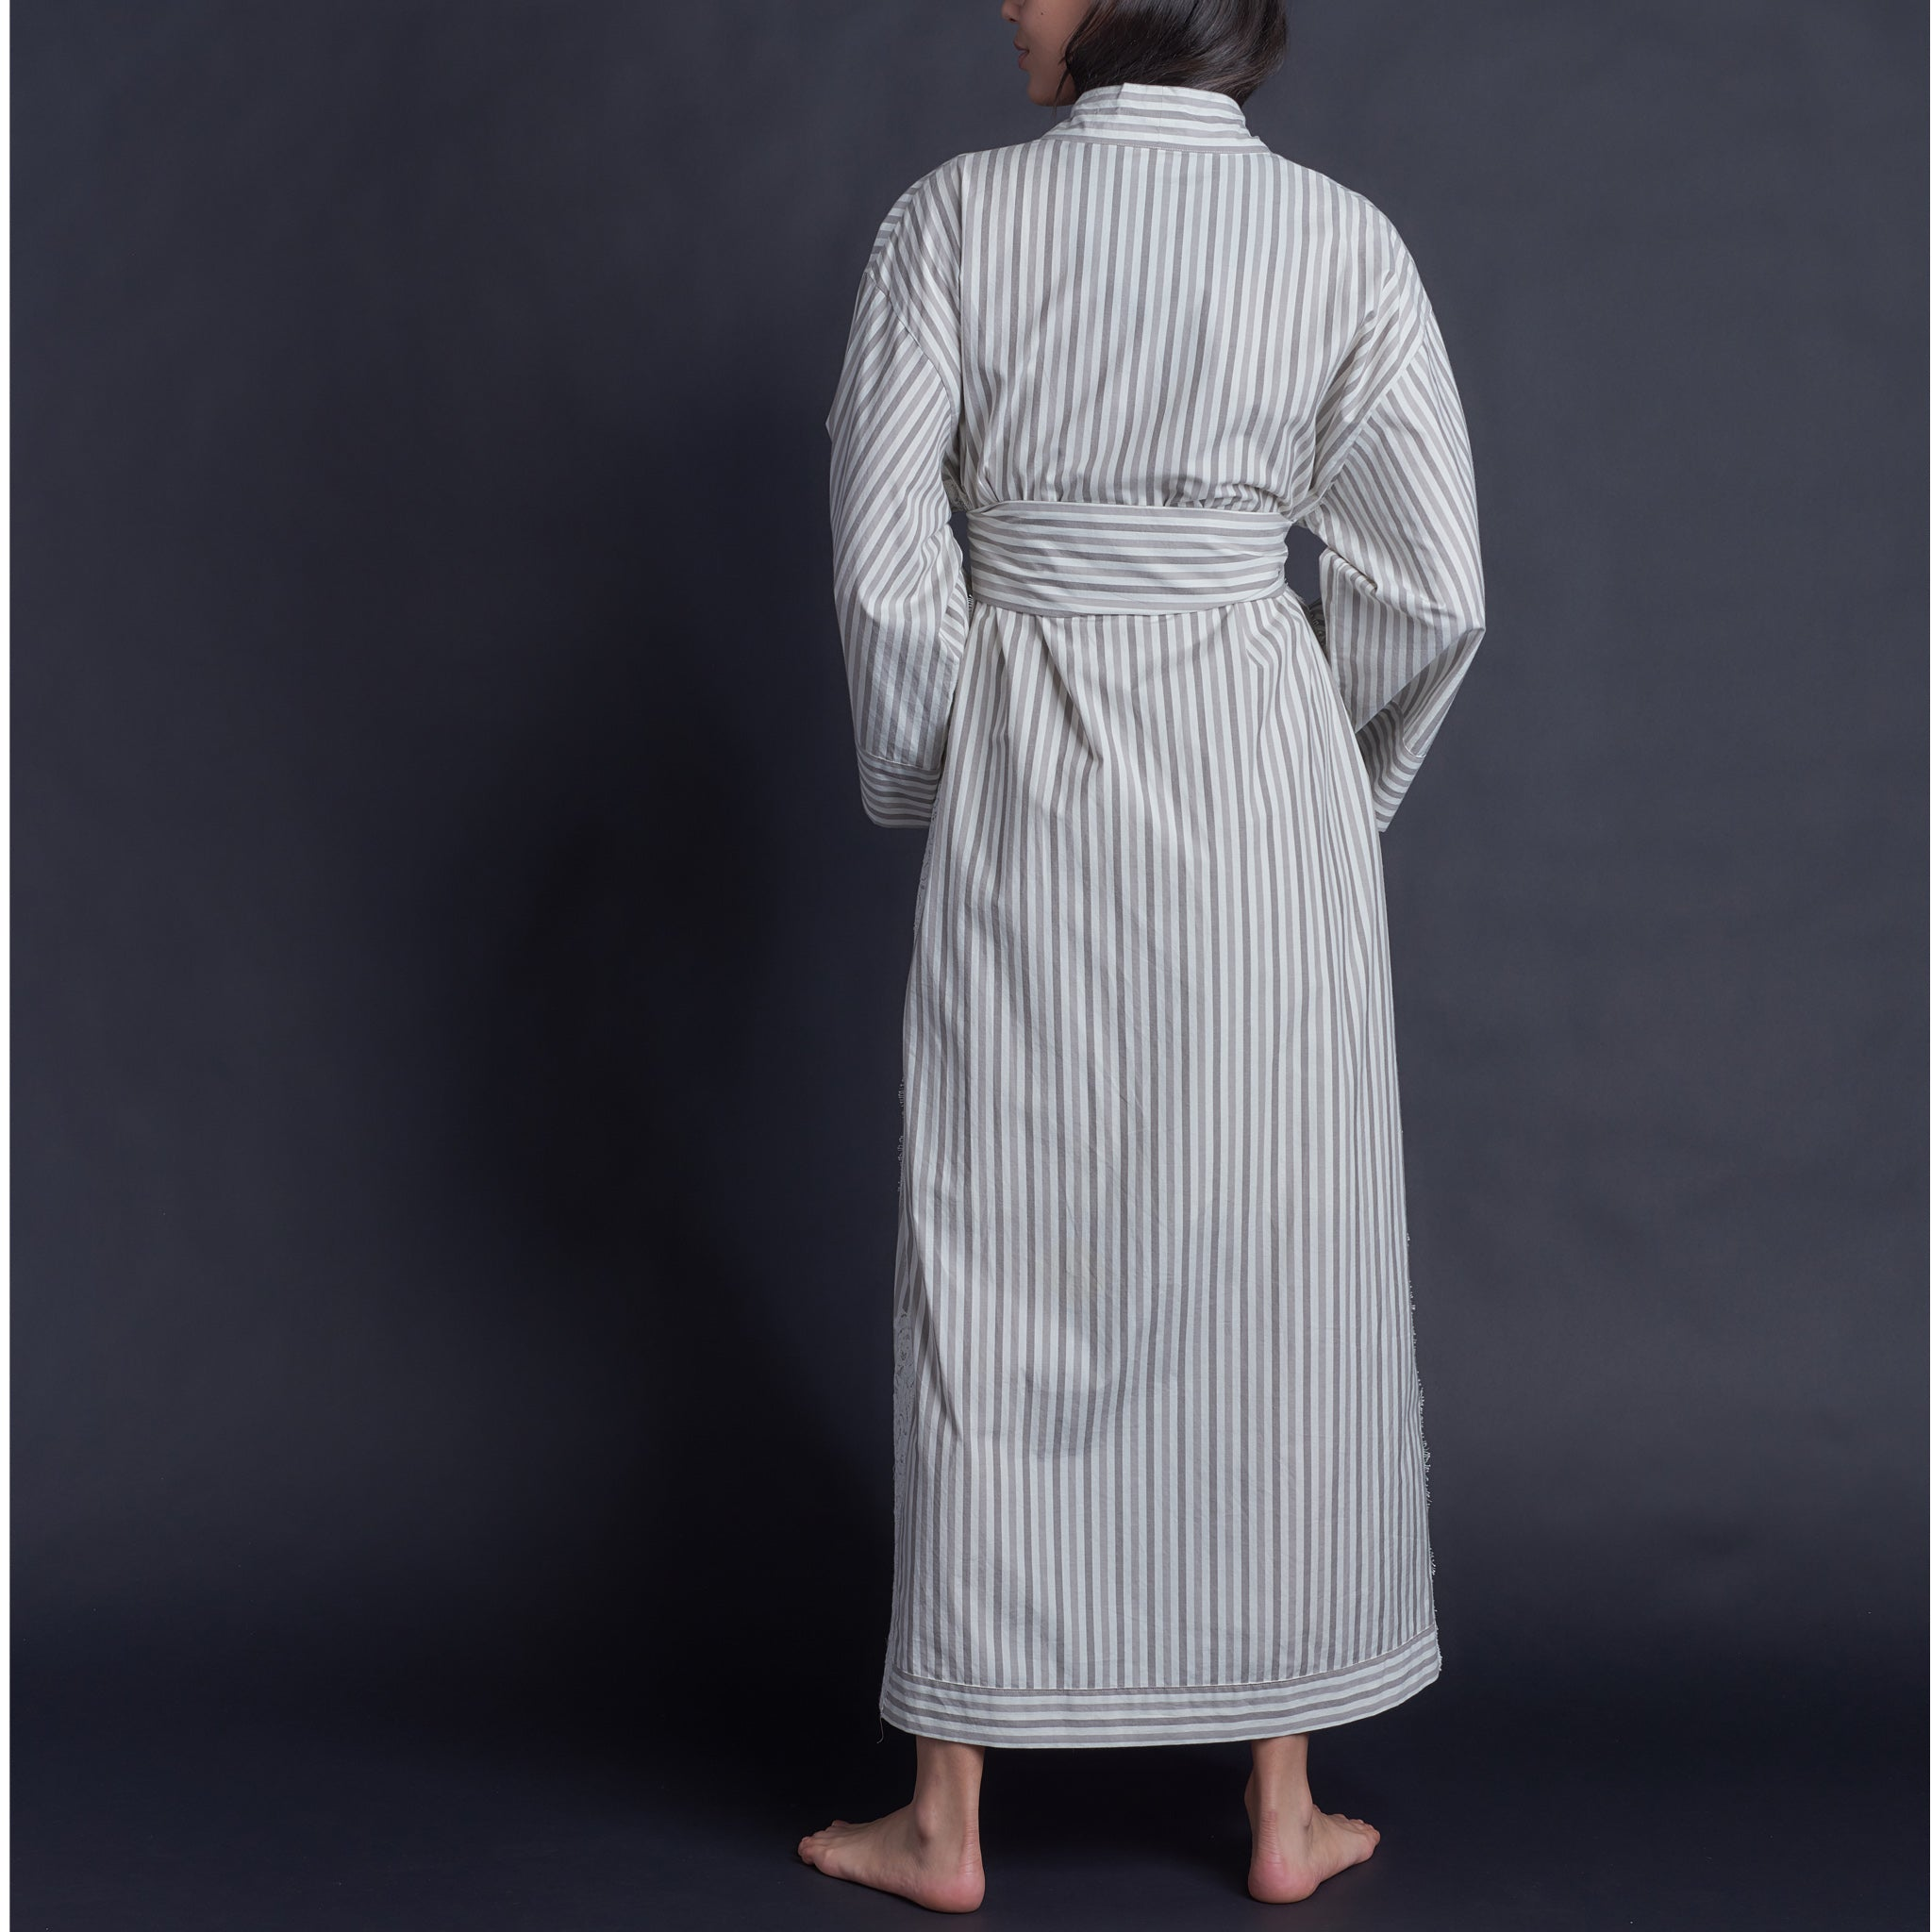 Asteria Kimono Robe in Italian Cotton Sand Stripe with Lace